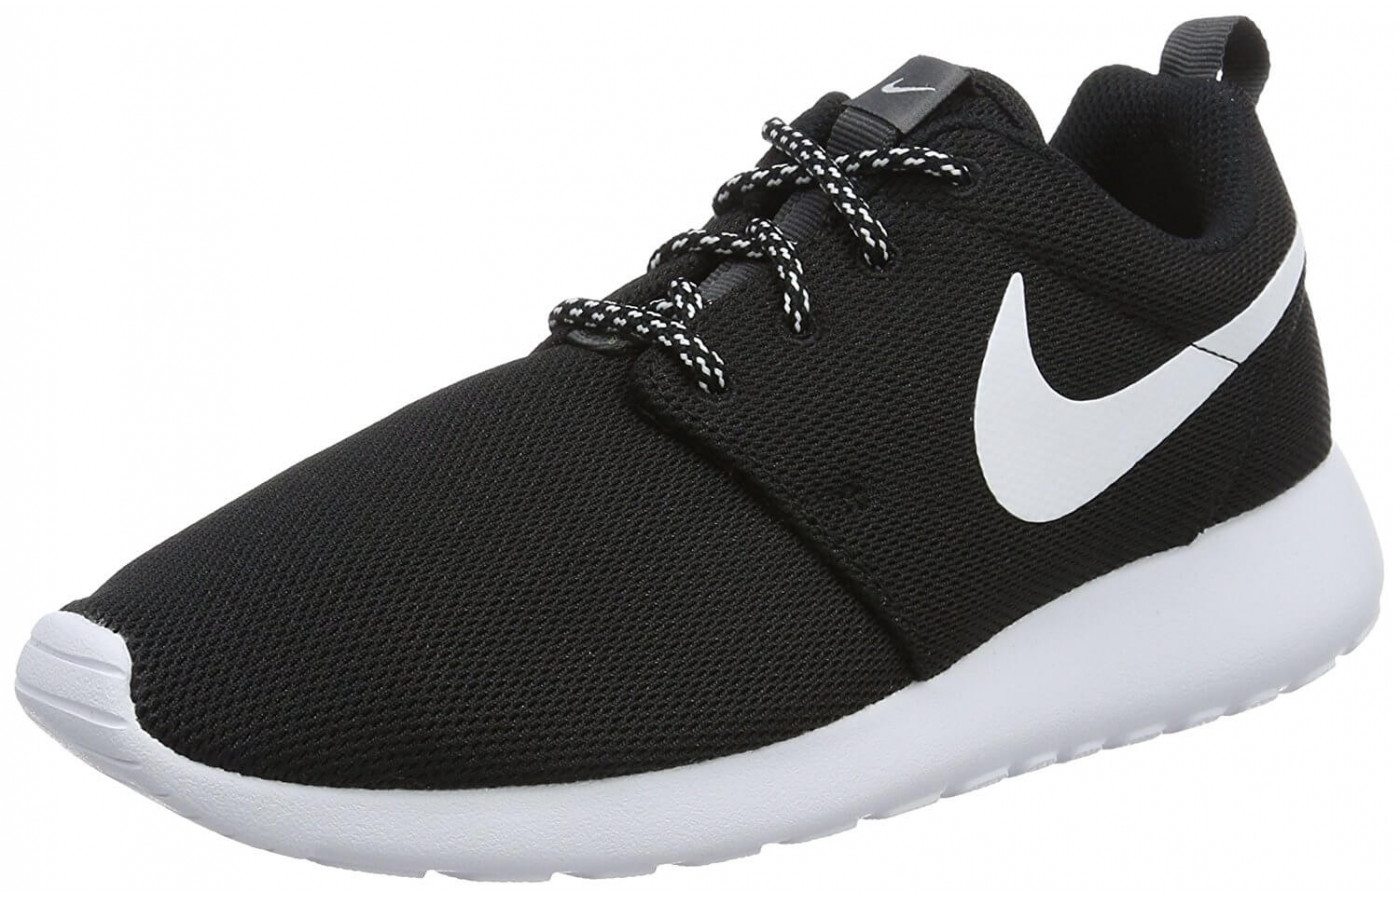 nike roshe one reviewed to buy or not in aug 2019. Black Bedroom Furniture Sets. Home Design Ideas